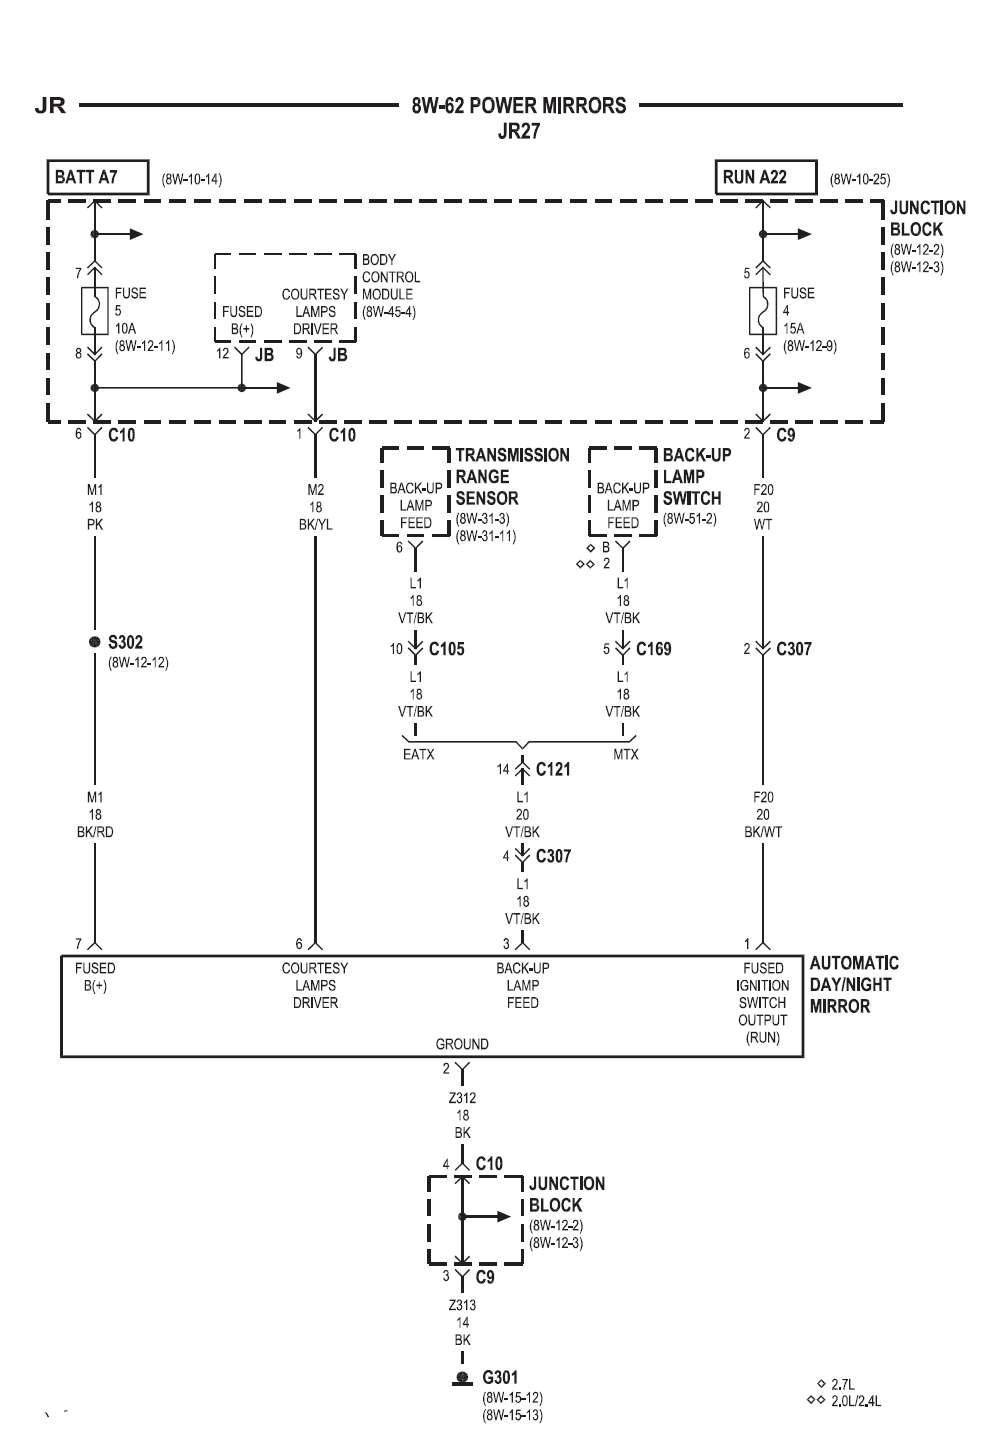 Wiring Diagram Cars Trucks Wiring Diagram Cars Trucks Truck Horn Wiring Wiring Diagrams Cars Trucks Trucks Truck Horn